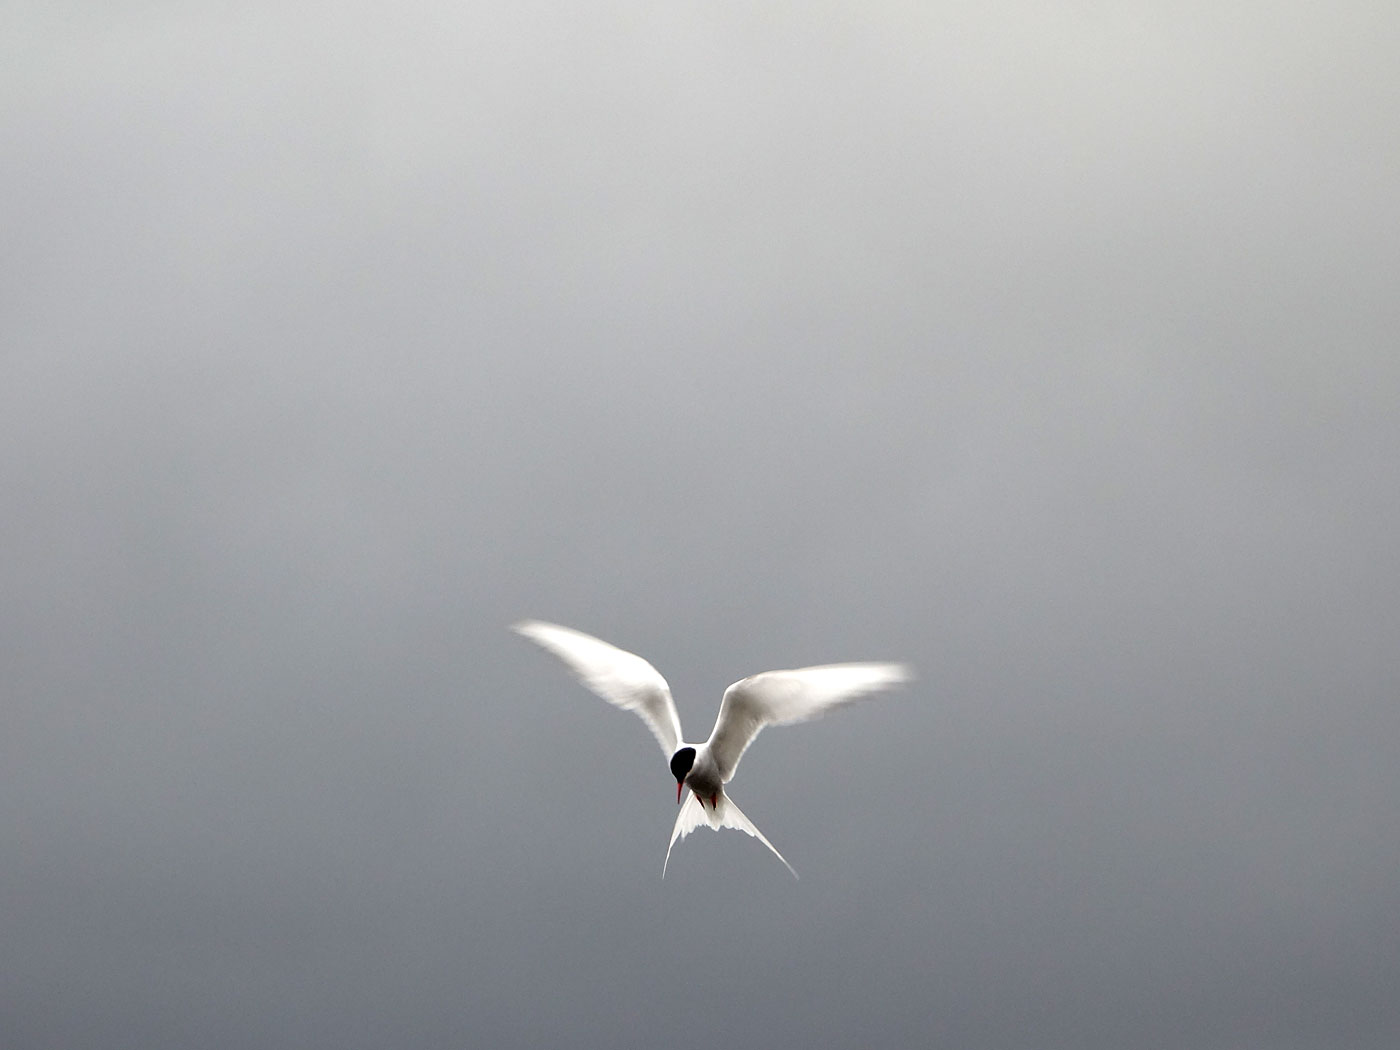 Djúpavík. Kría (Arctic tern). - I. (13 and 14 August 2013)